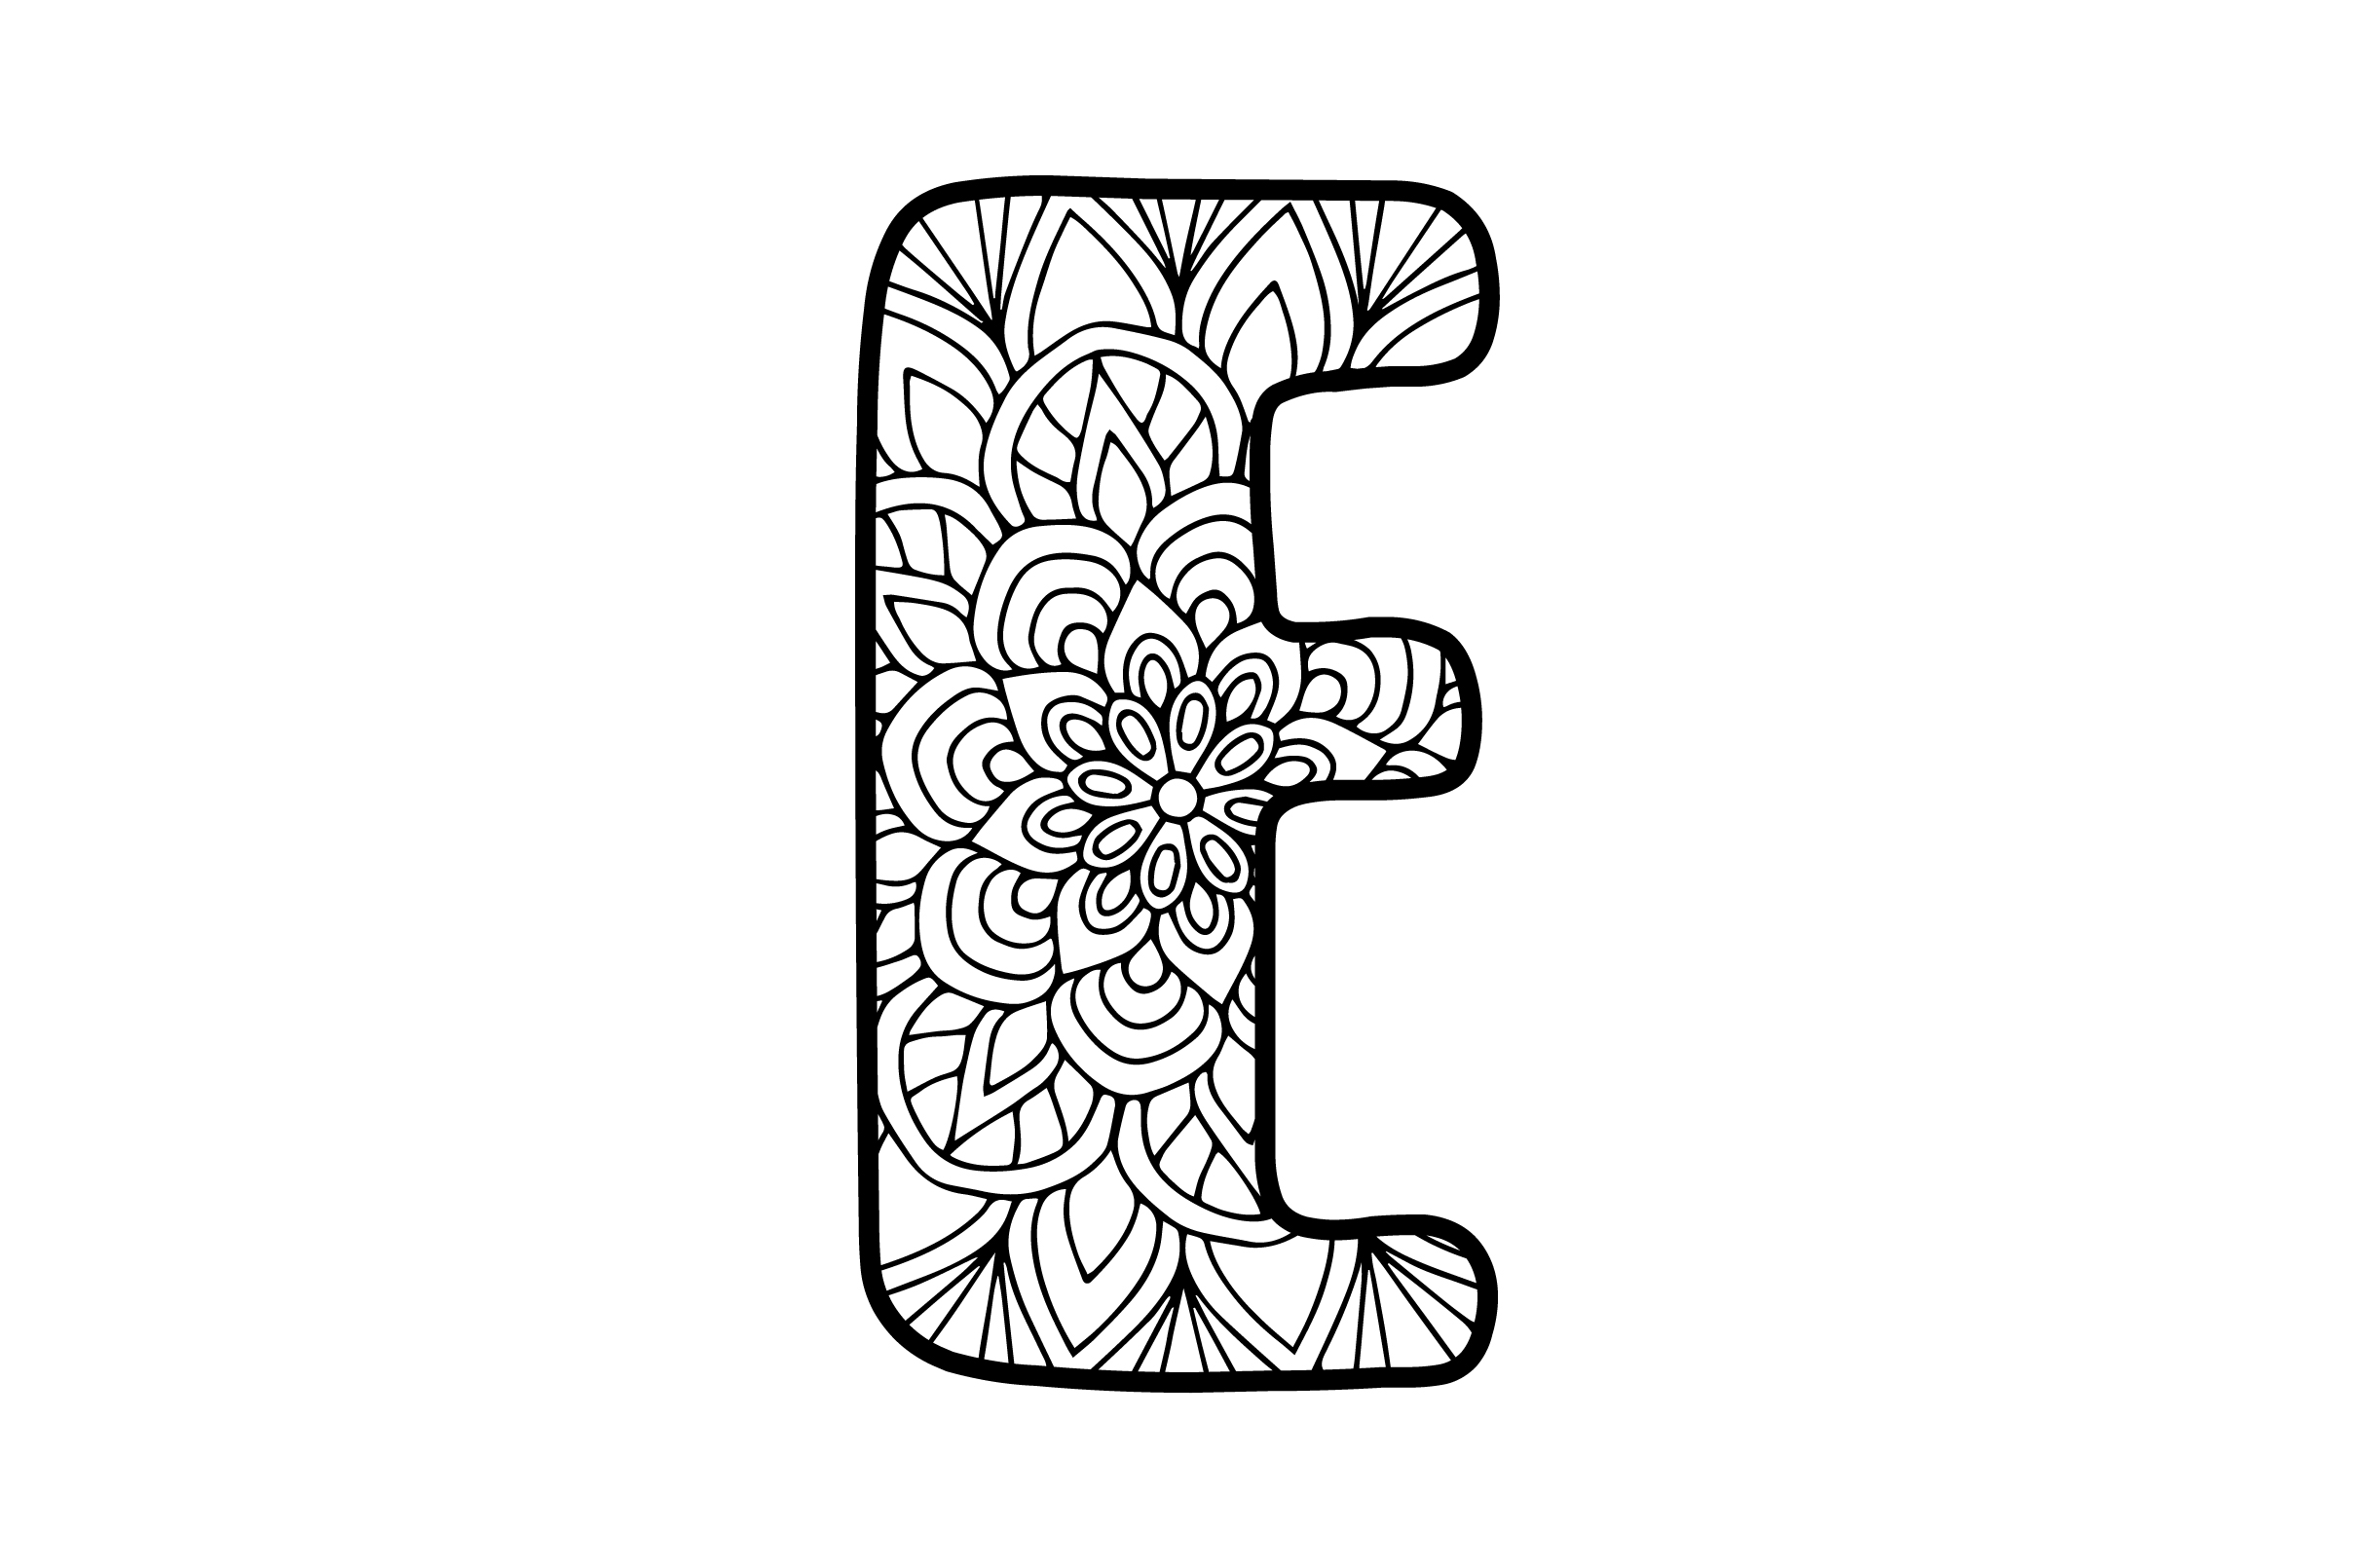 Download Free Mandala Alphabet E Svg Cut File By Creative Fabrica Crafts for Cricut Explore, Silhouette and other cutting machines.